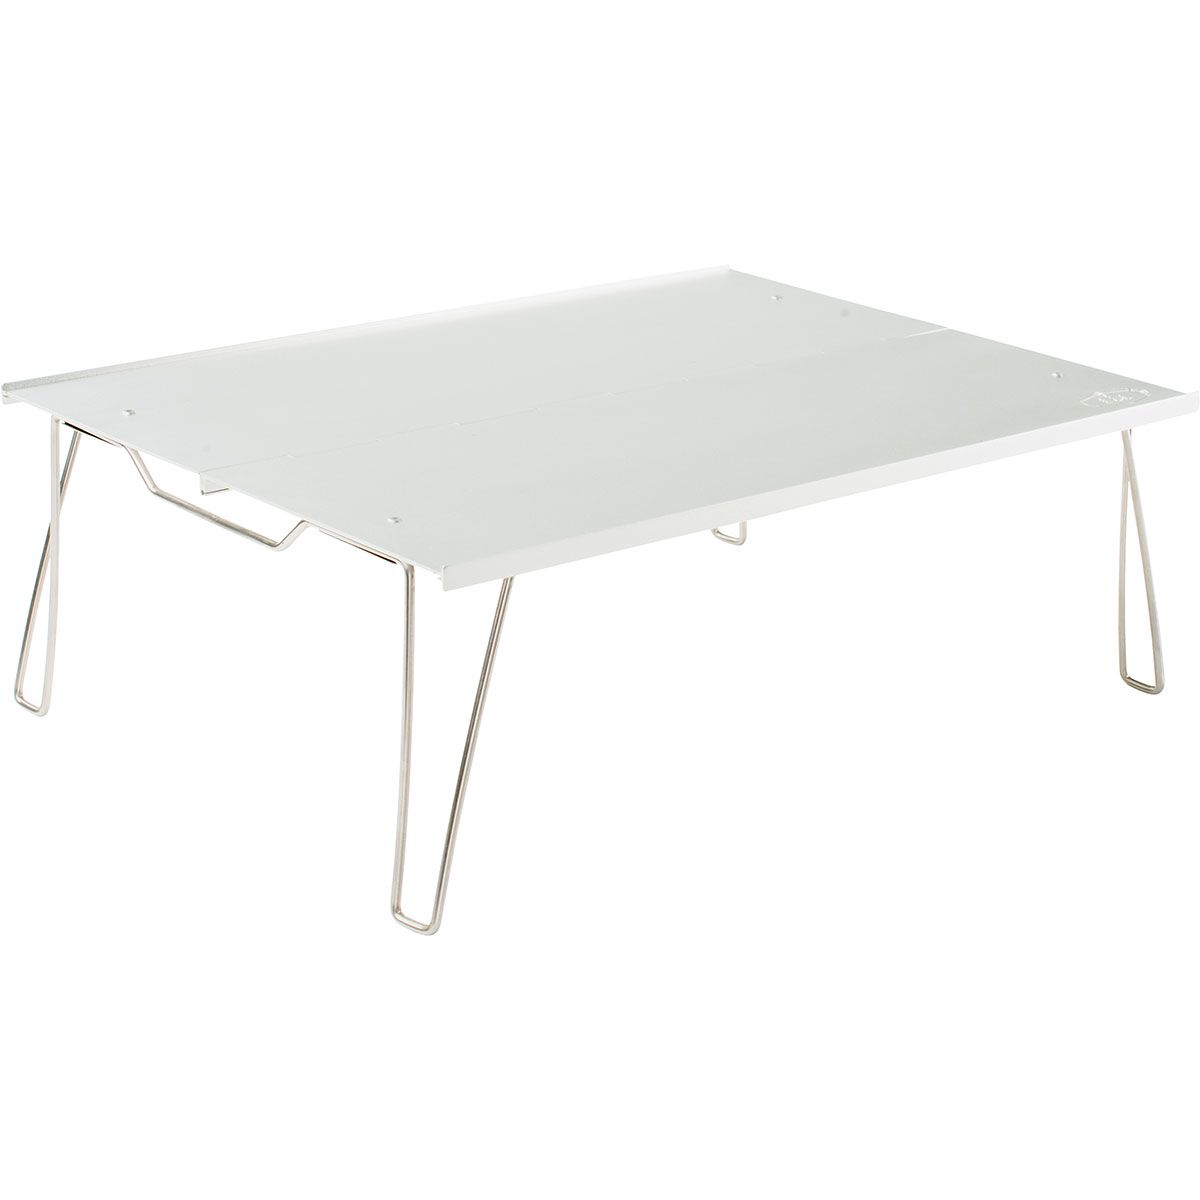 Image of GSI Ultralight Table Falttisch